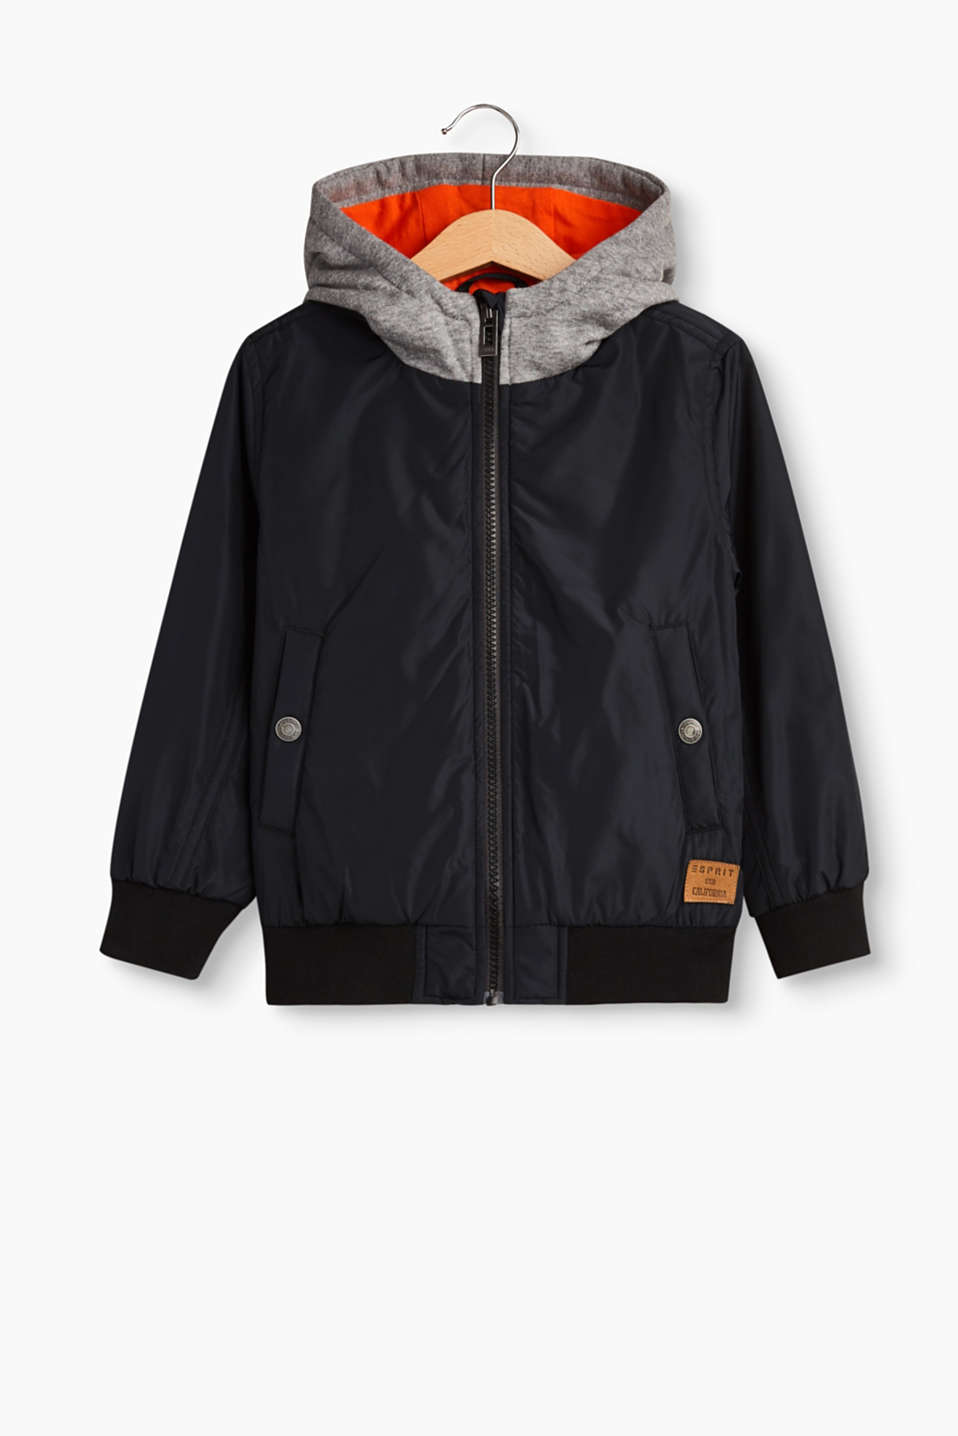 Esprit - Weatherproof jacket with a sweatshirt hood